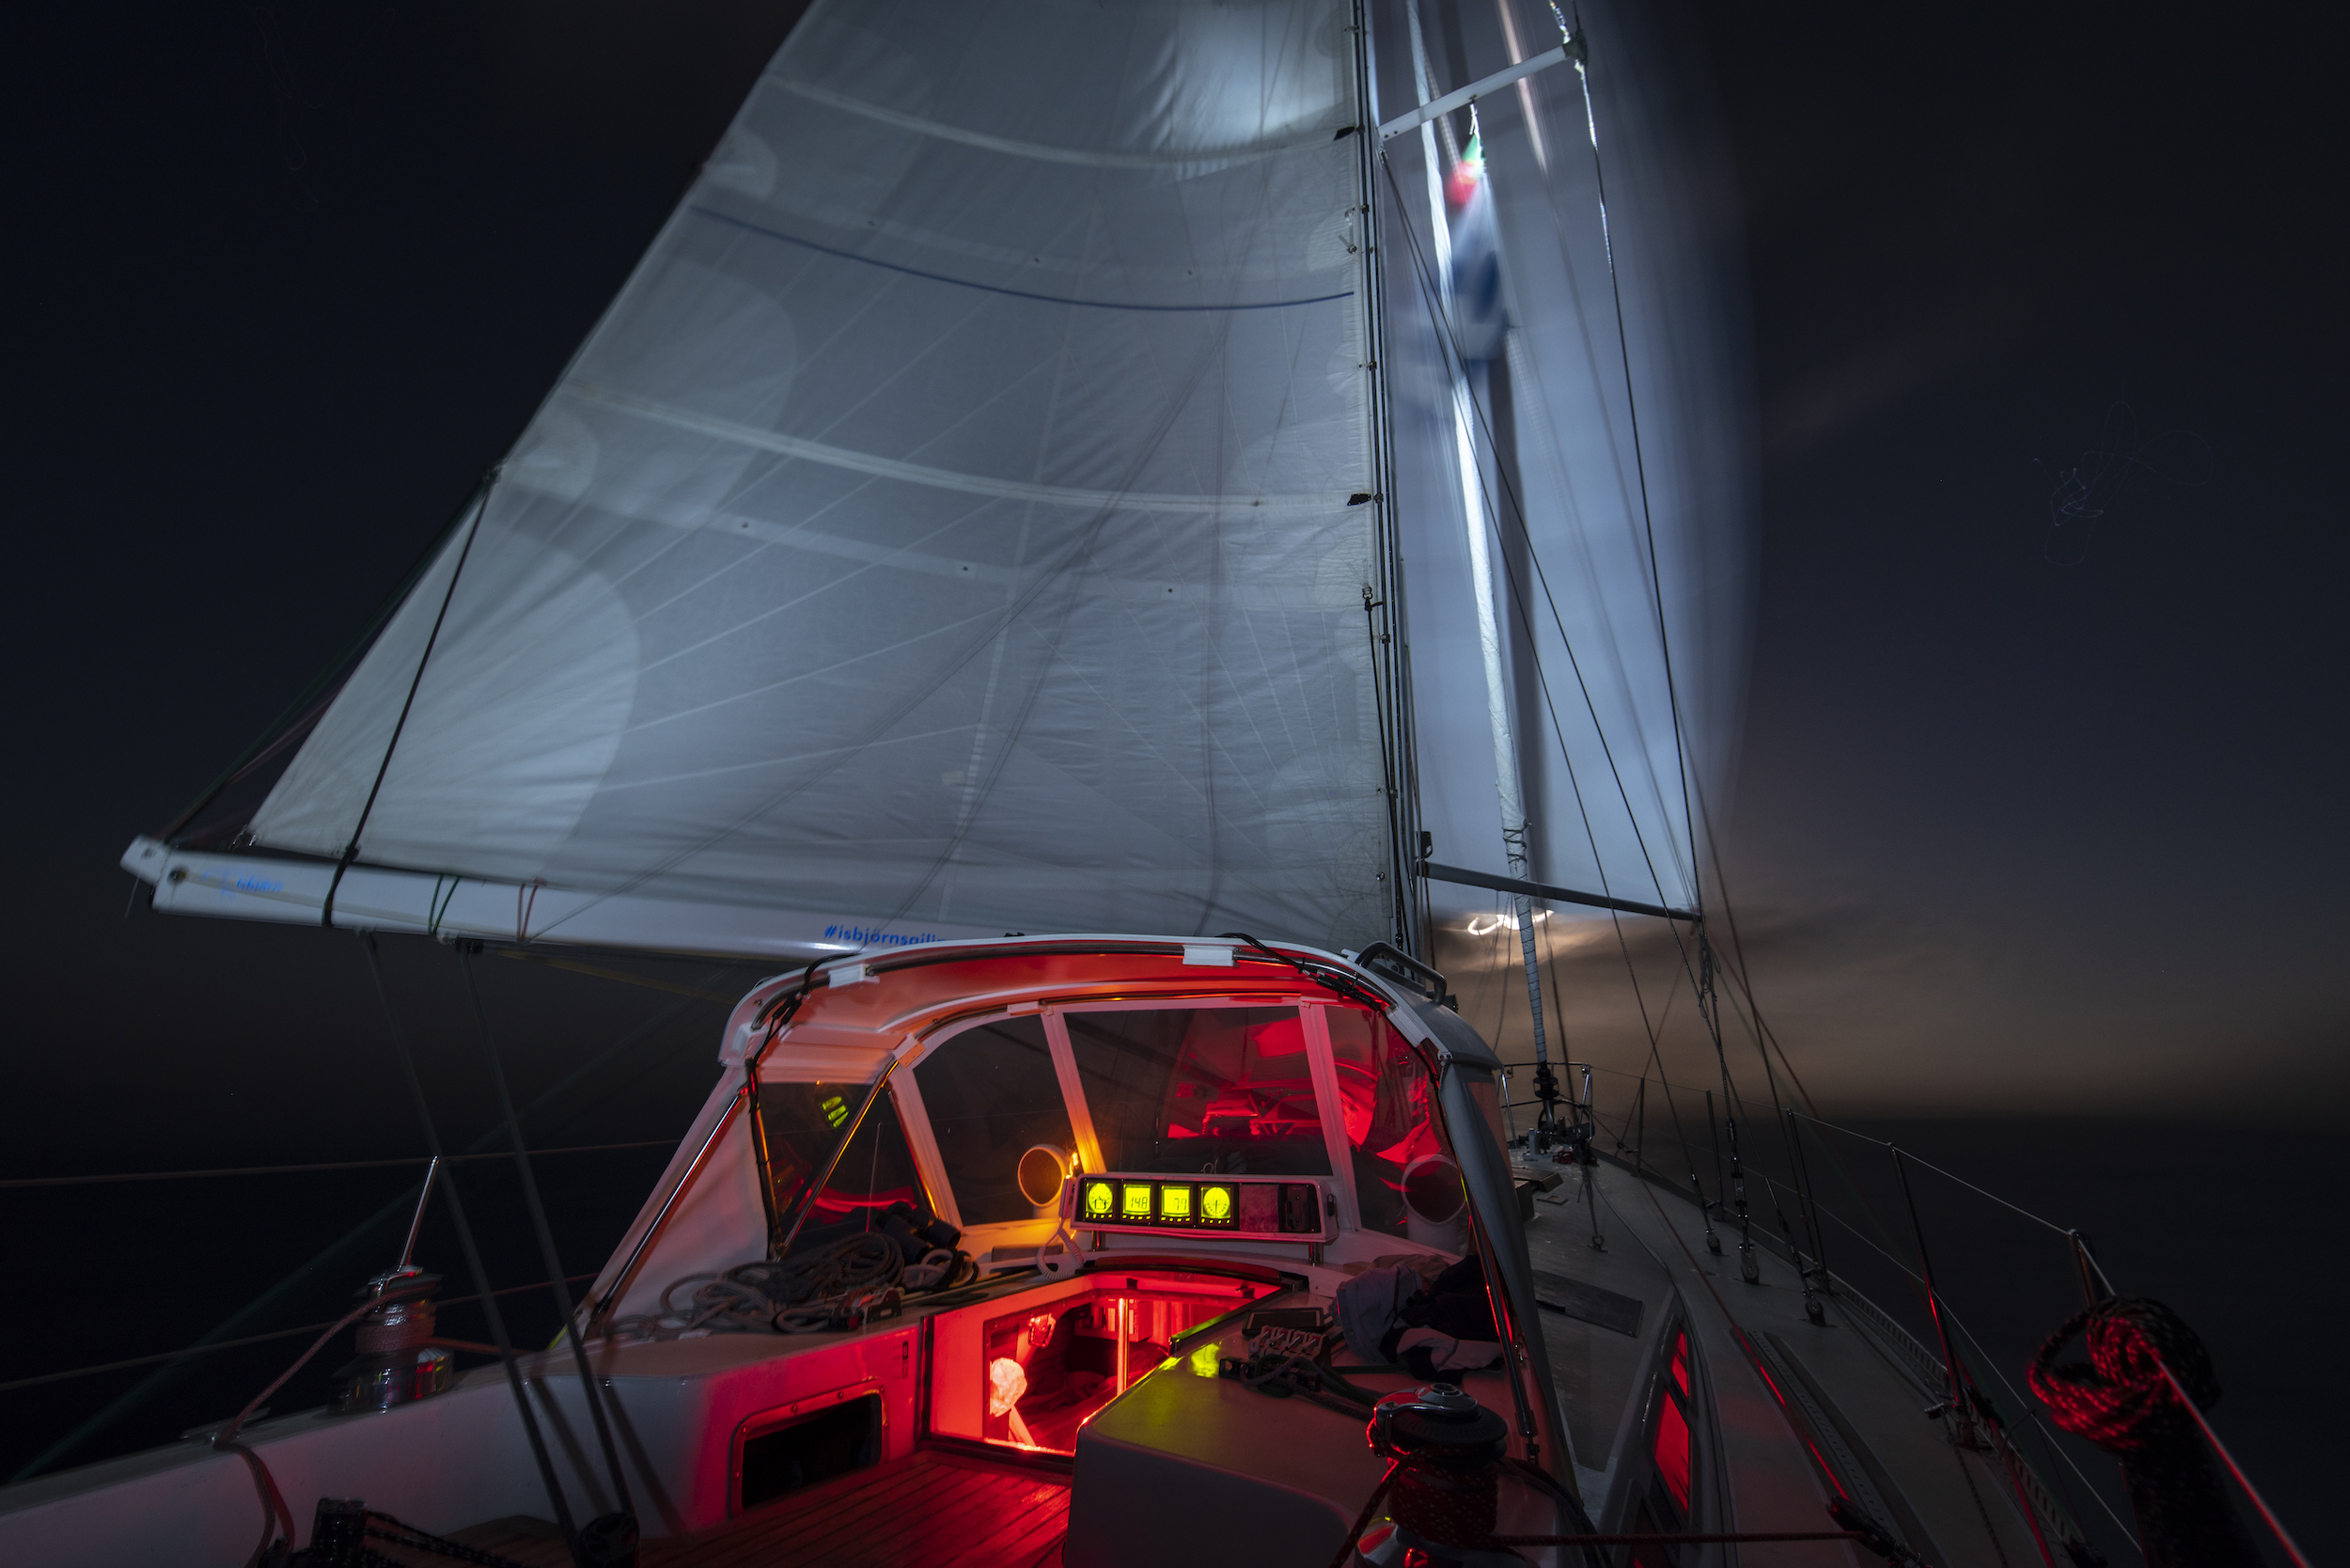 Using the steaming light to illuminate the spinnaker at night.    Andy posted this photo on Facebook, which started a very good discussion on COLREGS offshore, with comments from people like John Rousmaniere, Peter Johnstone, Olly Cotterell (ex-Clipper Race skipper), Mark Baummer (ship's pilot) and more. Click here to follow the thread.